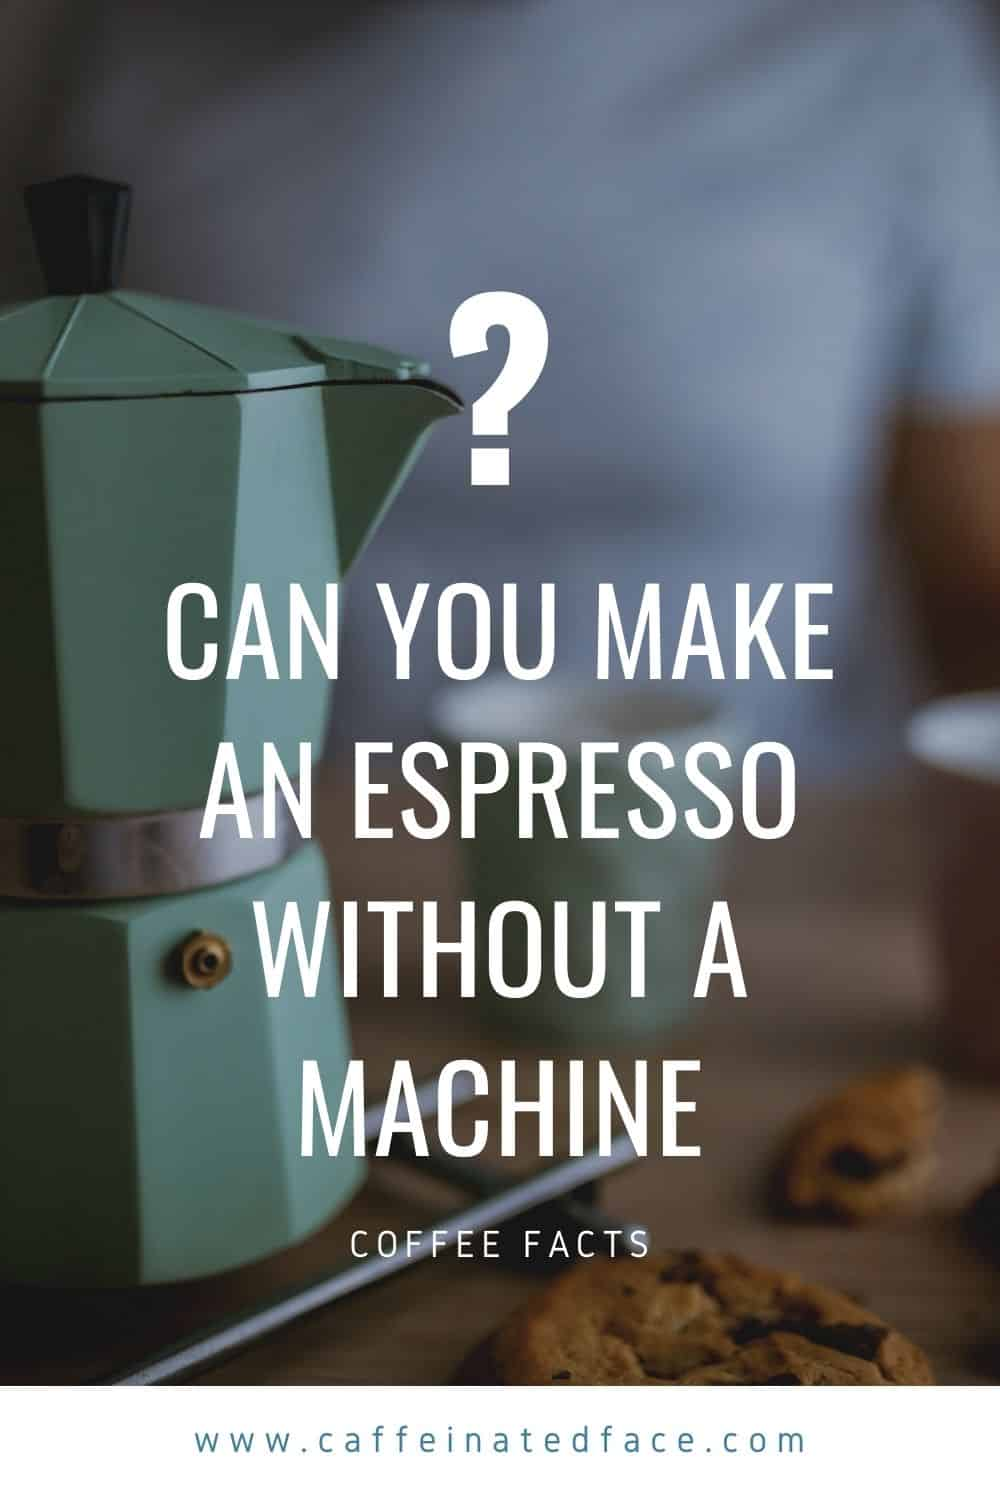 Can You Make An Espresso Without A Machine (1)